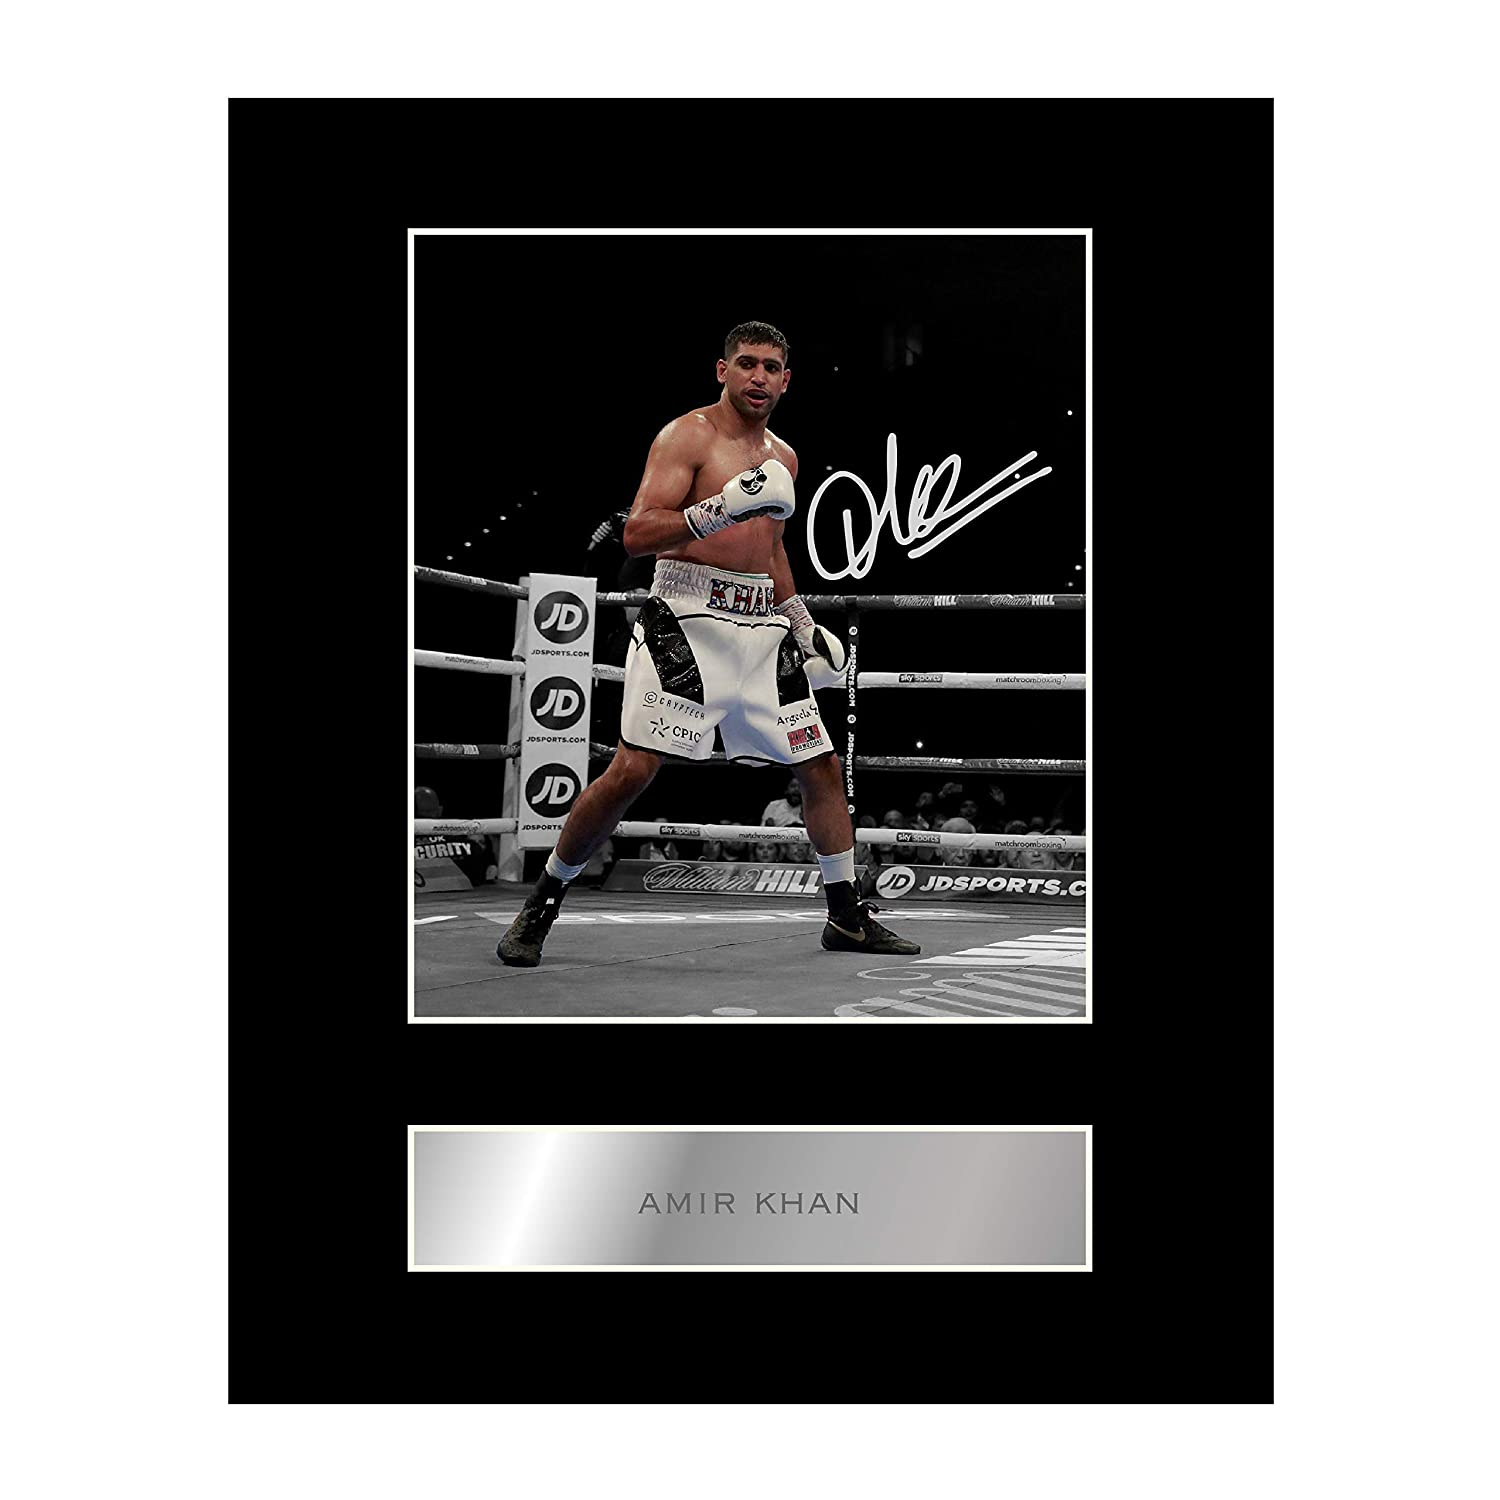 Amir Khan Signed Mounted Photo Display Boxing Champion Autographed Gift Picture Print Iconic pics